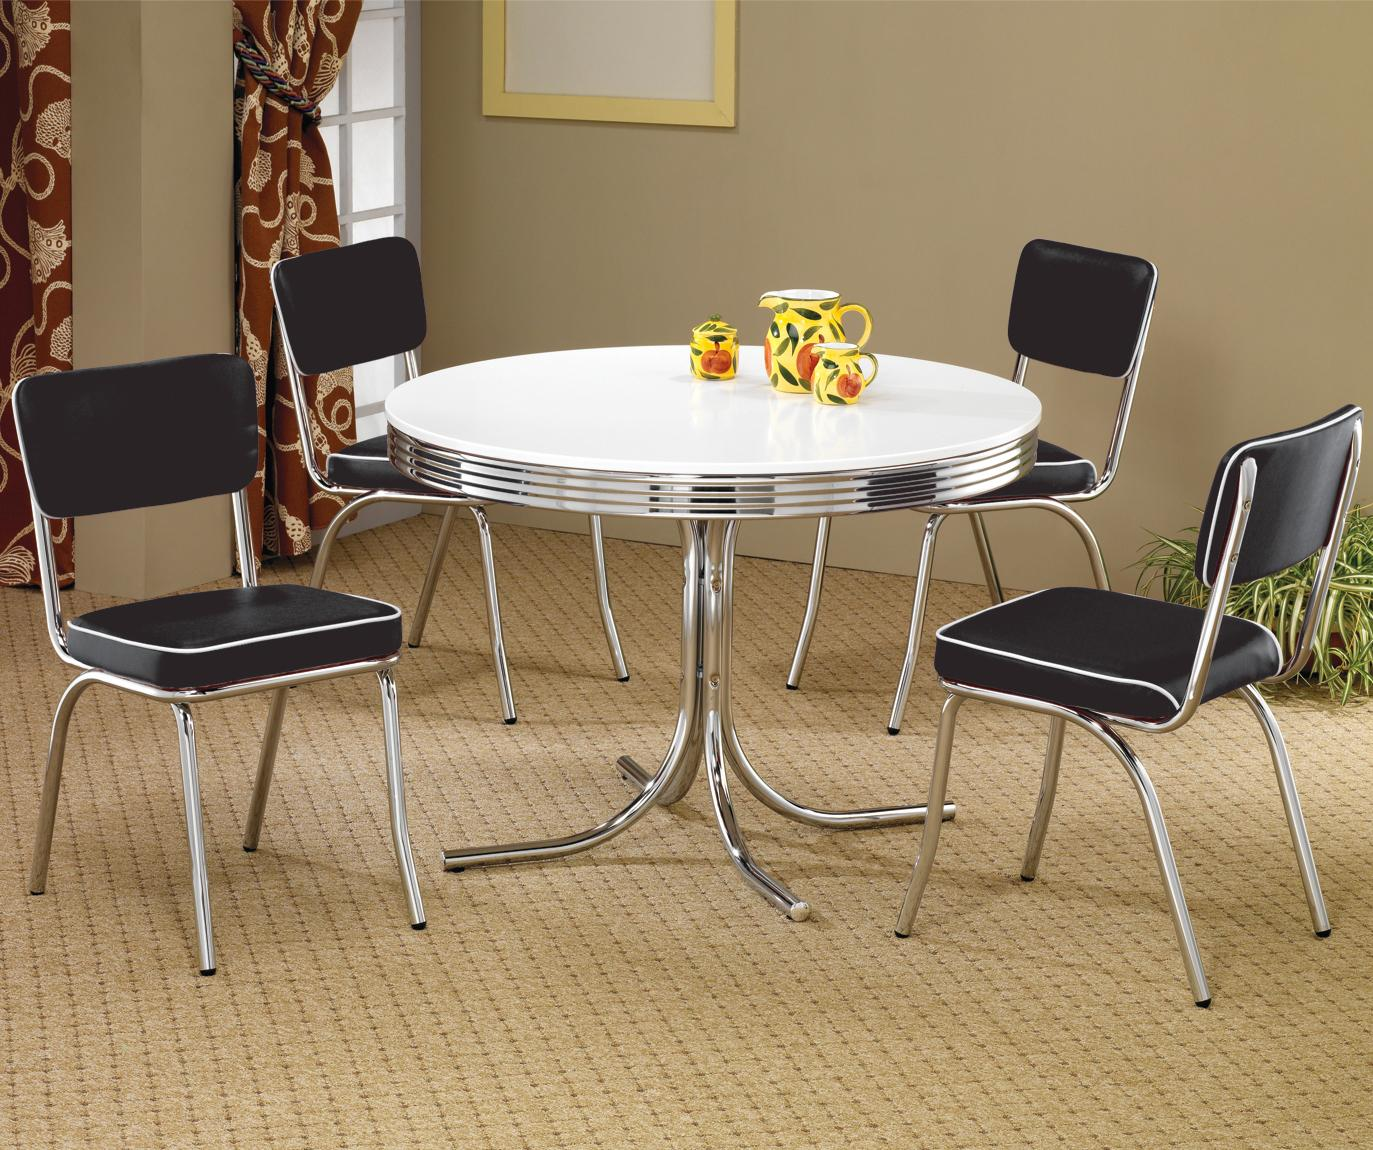 Coaster Cleveland 2388 Round Chrome Plated Dining Table